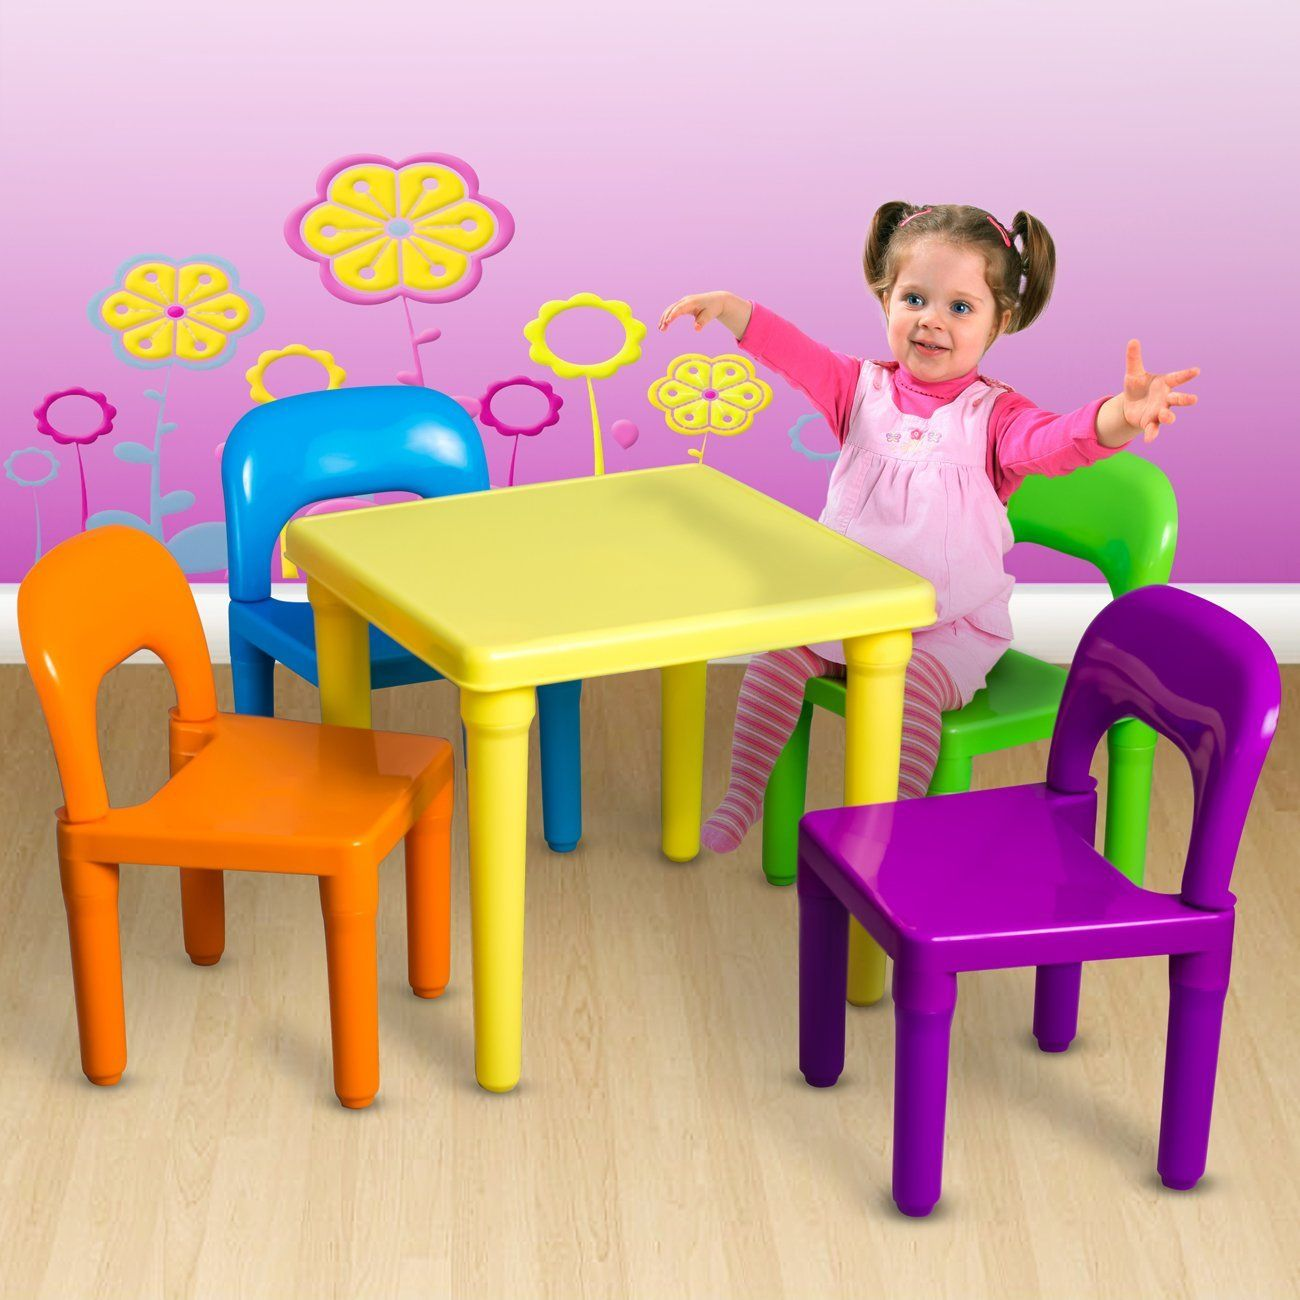 Plastic Table And Chairs For Kids Amazon Com Oxgord Kids Table And Chairs Kids Table Set Kids Chairs